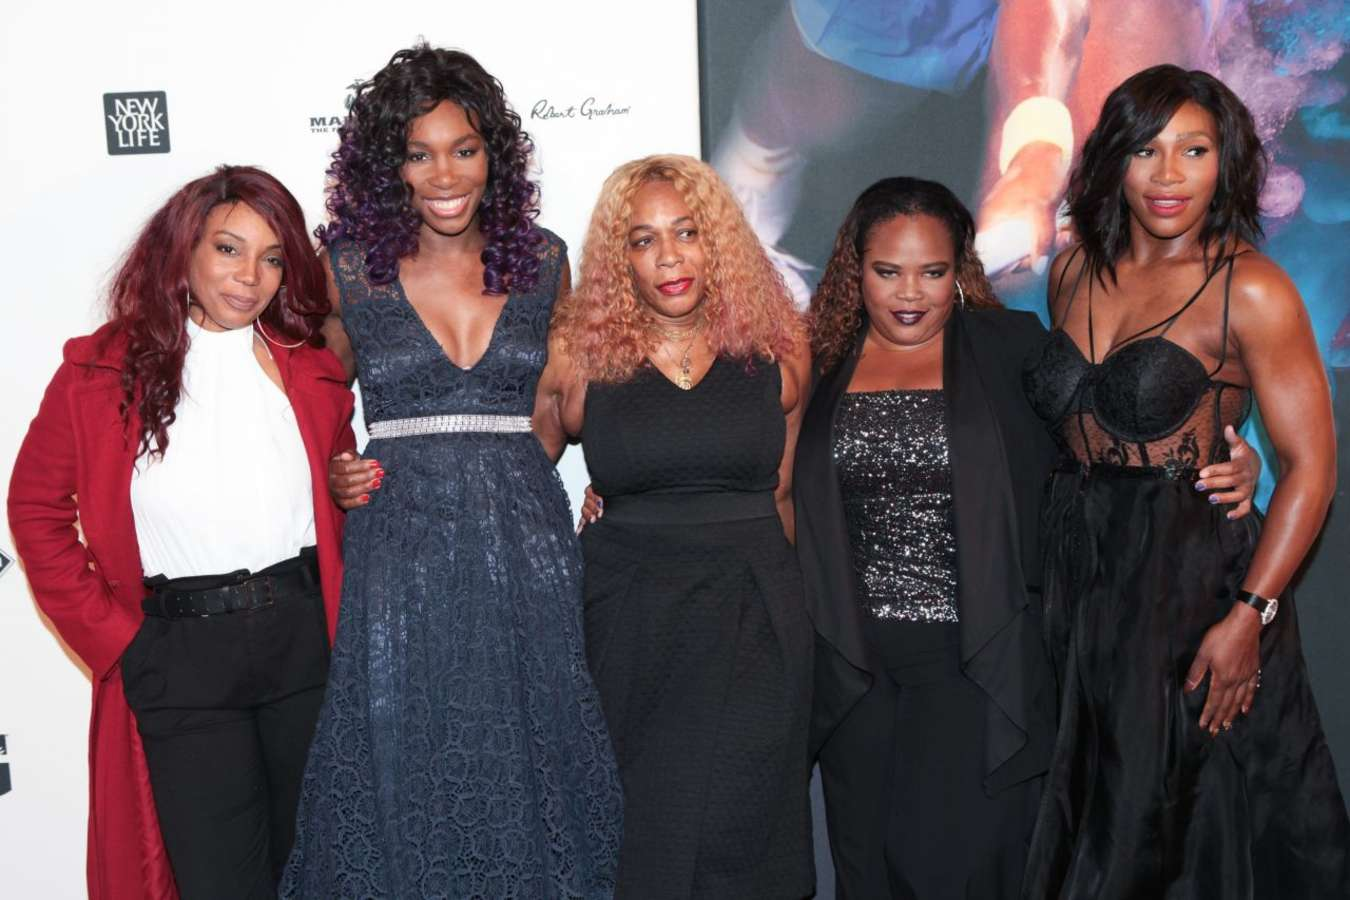 Venus and Serena Williams Sports Illustrated Sportsperson of the Year Awards Celebration in New York